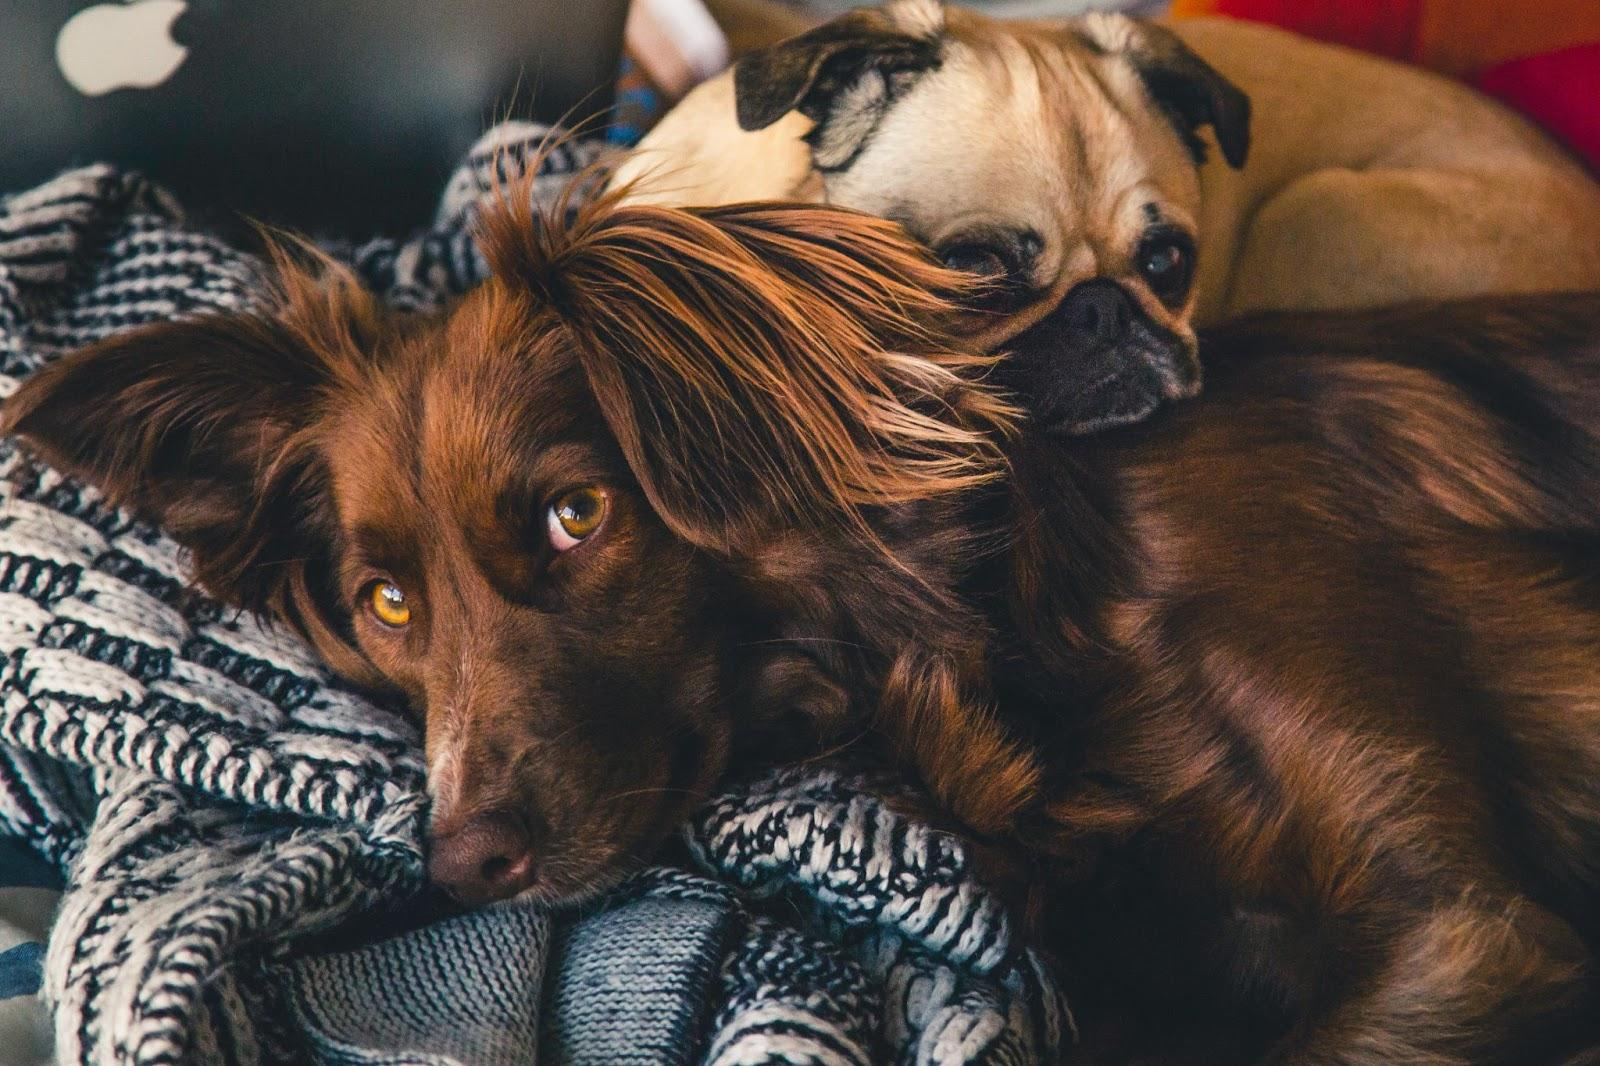 Are You an Animal Lover? Here Are 5 Ways To Channel That Energy